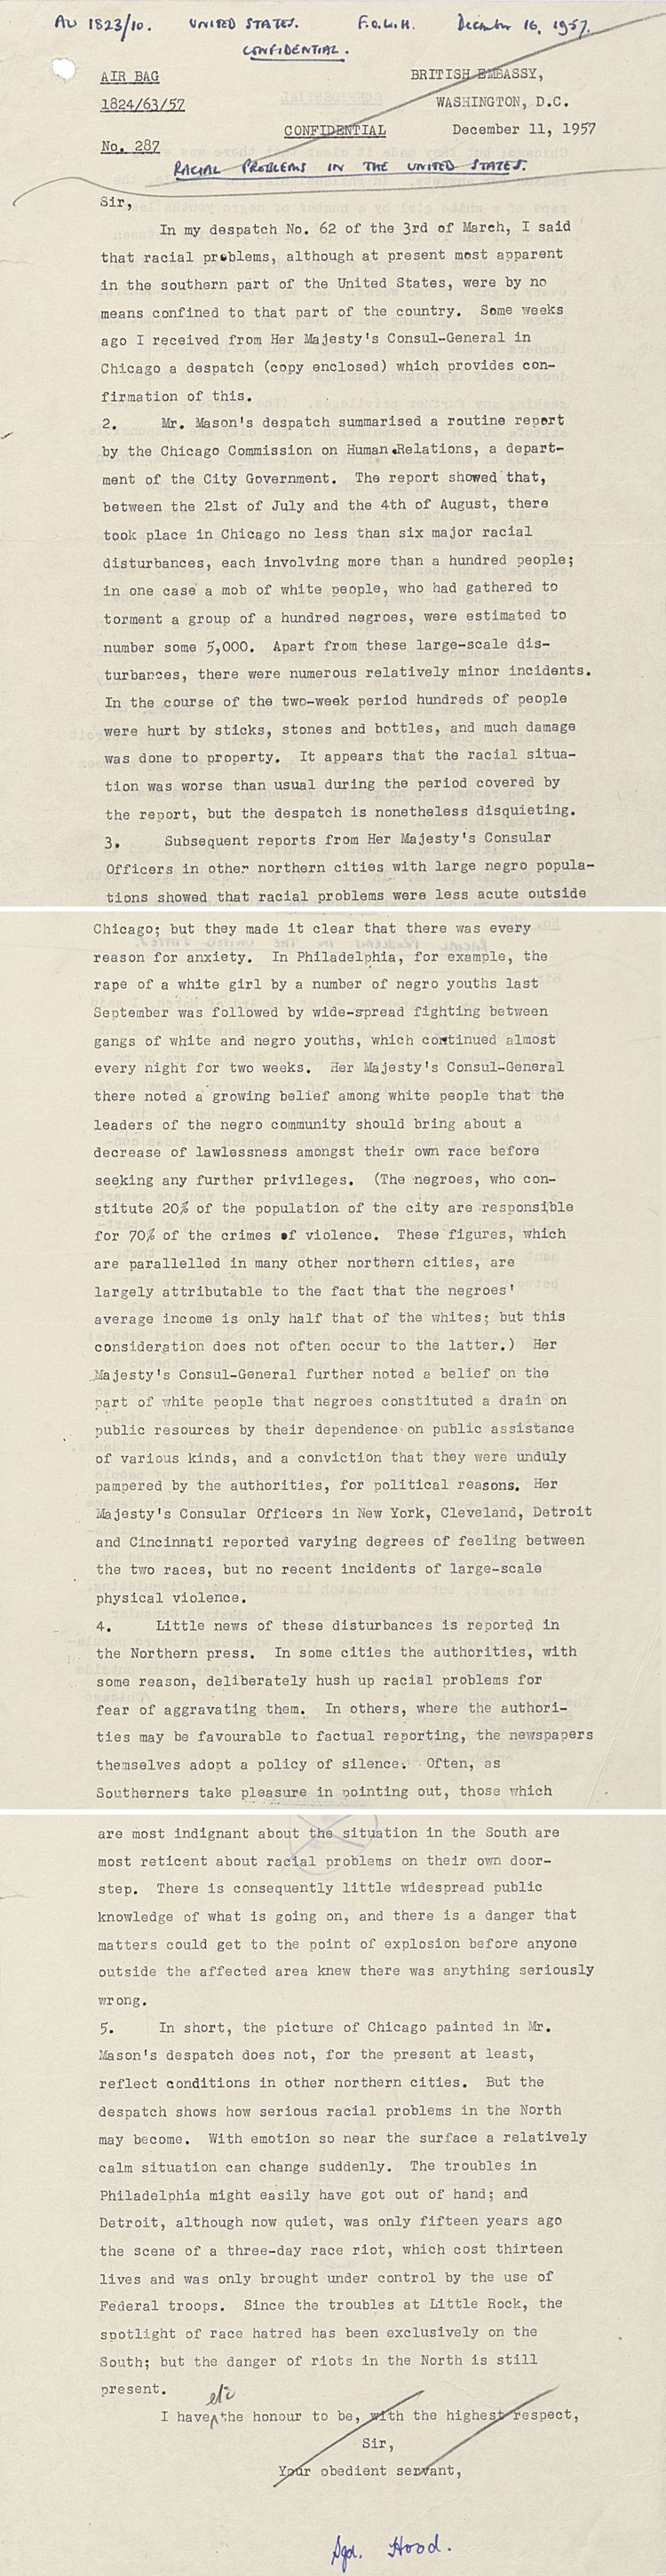 Letter on US Racial Problems from British Embassy in Washington to Foreign Secretary Selwyn Lloyd, December 11th 1957 (FO 371/126719)